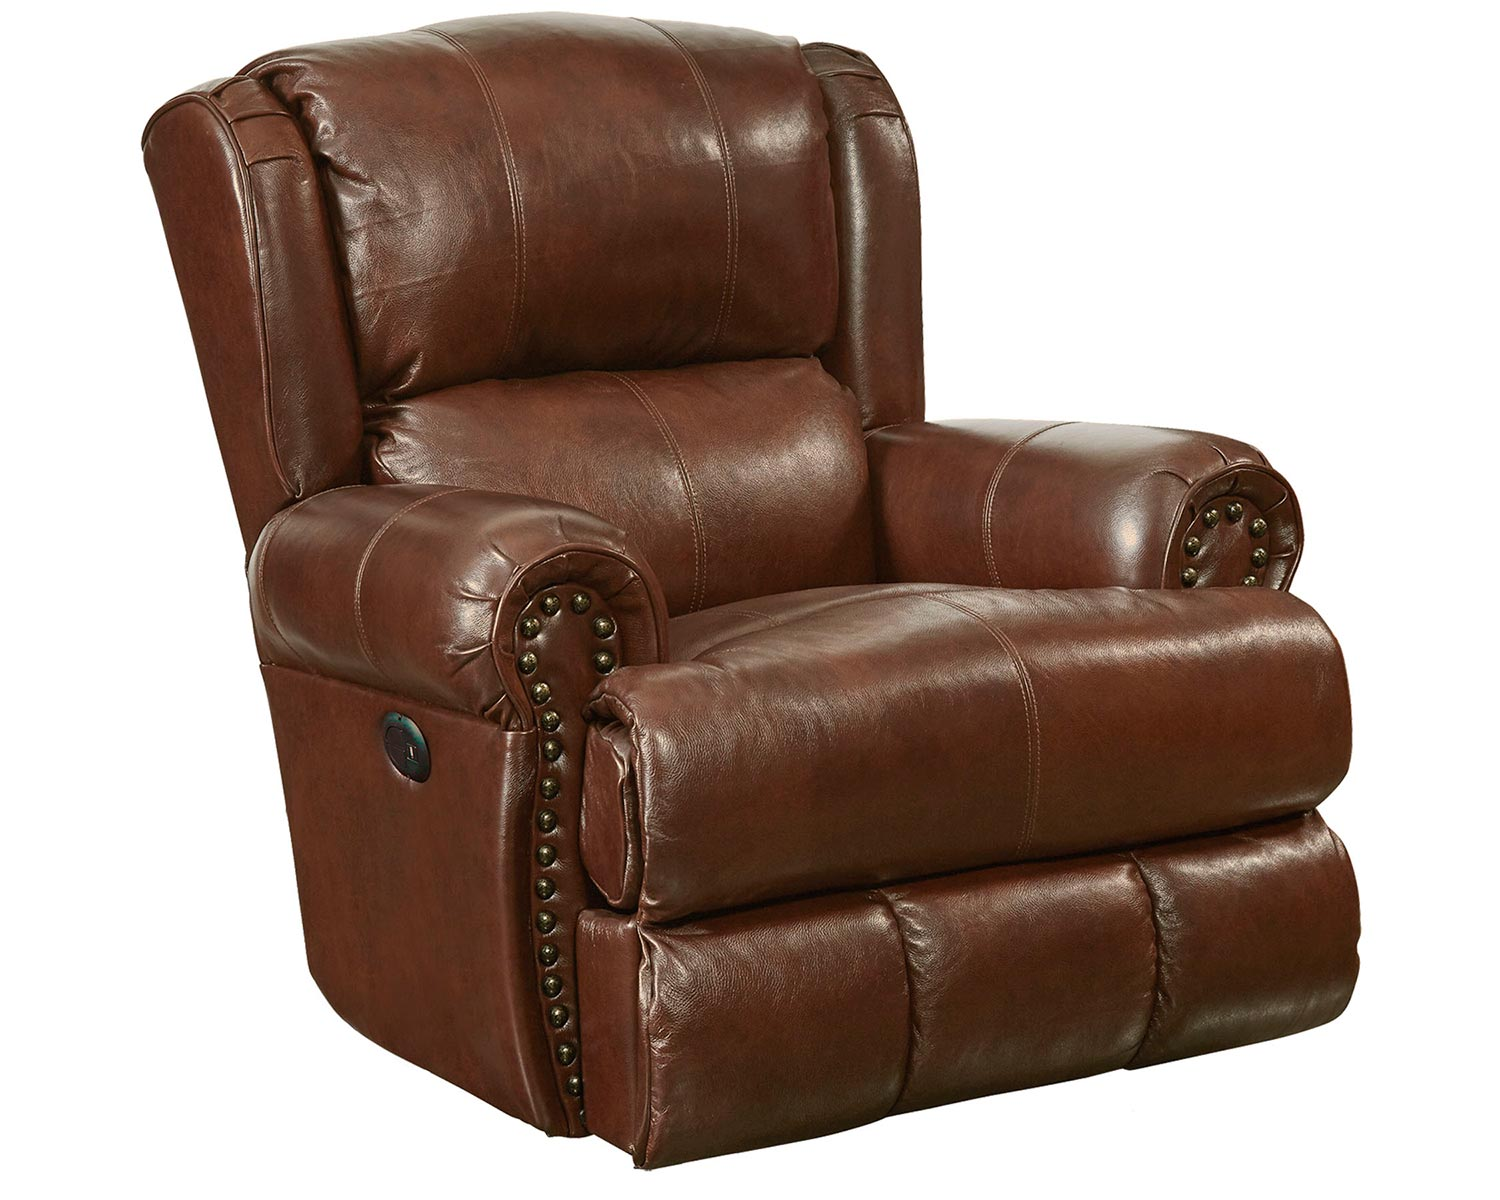 CatNapper Duncan Leather Glider Recliner Chair - Walnut